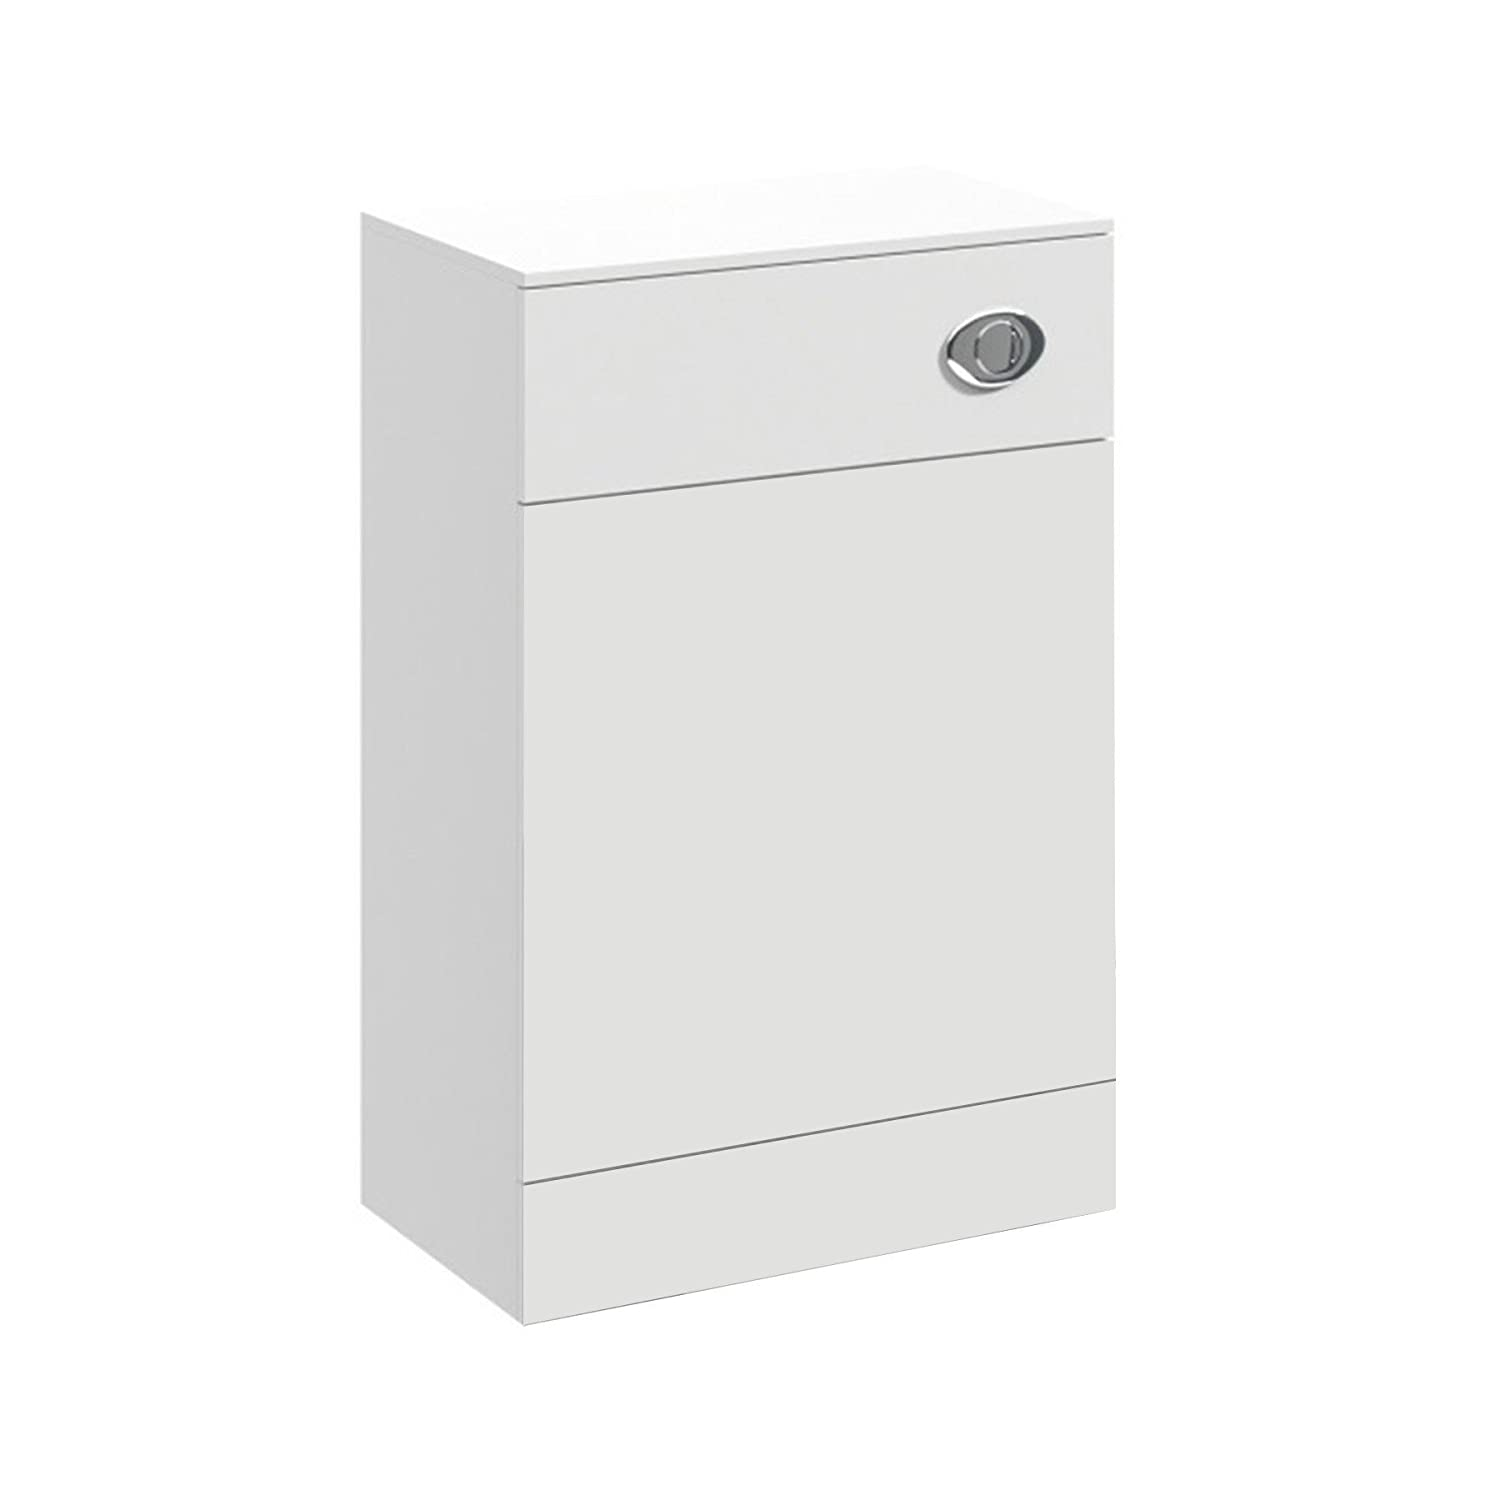 Mayford 500 x 766mm Back to Wall WC Toilet Unit - 300mm Deep Premier